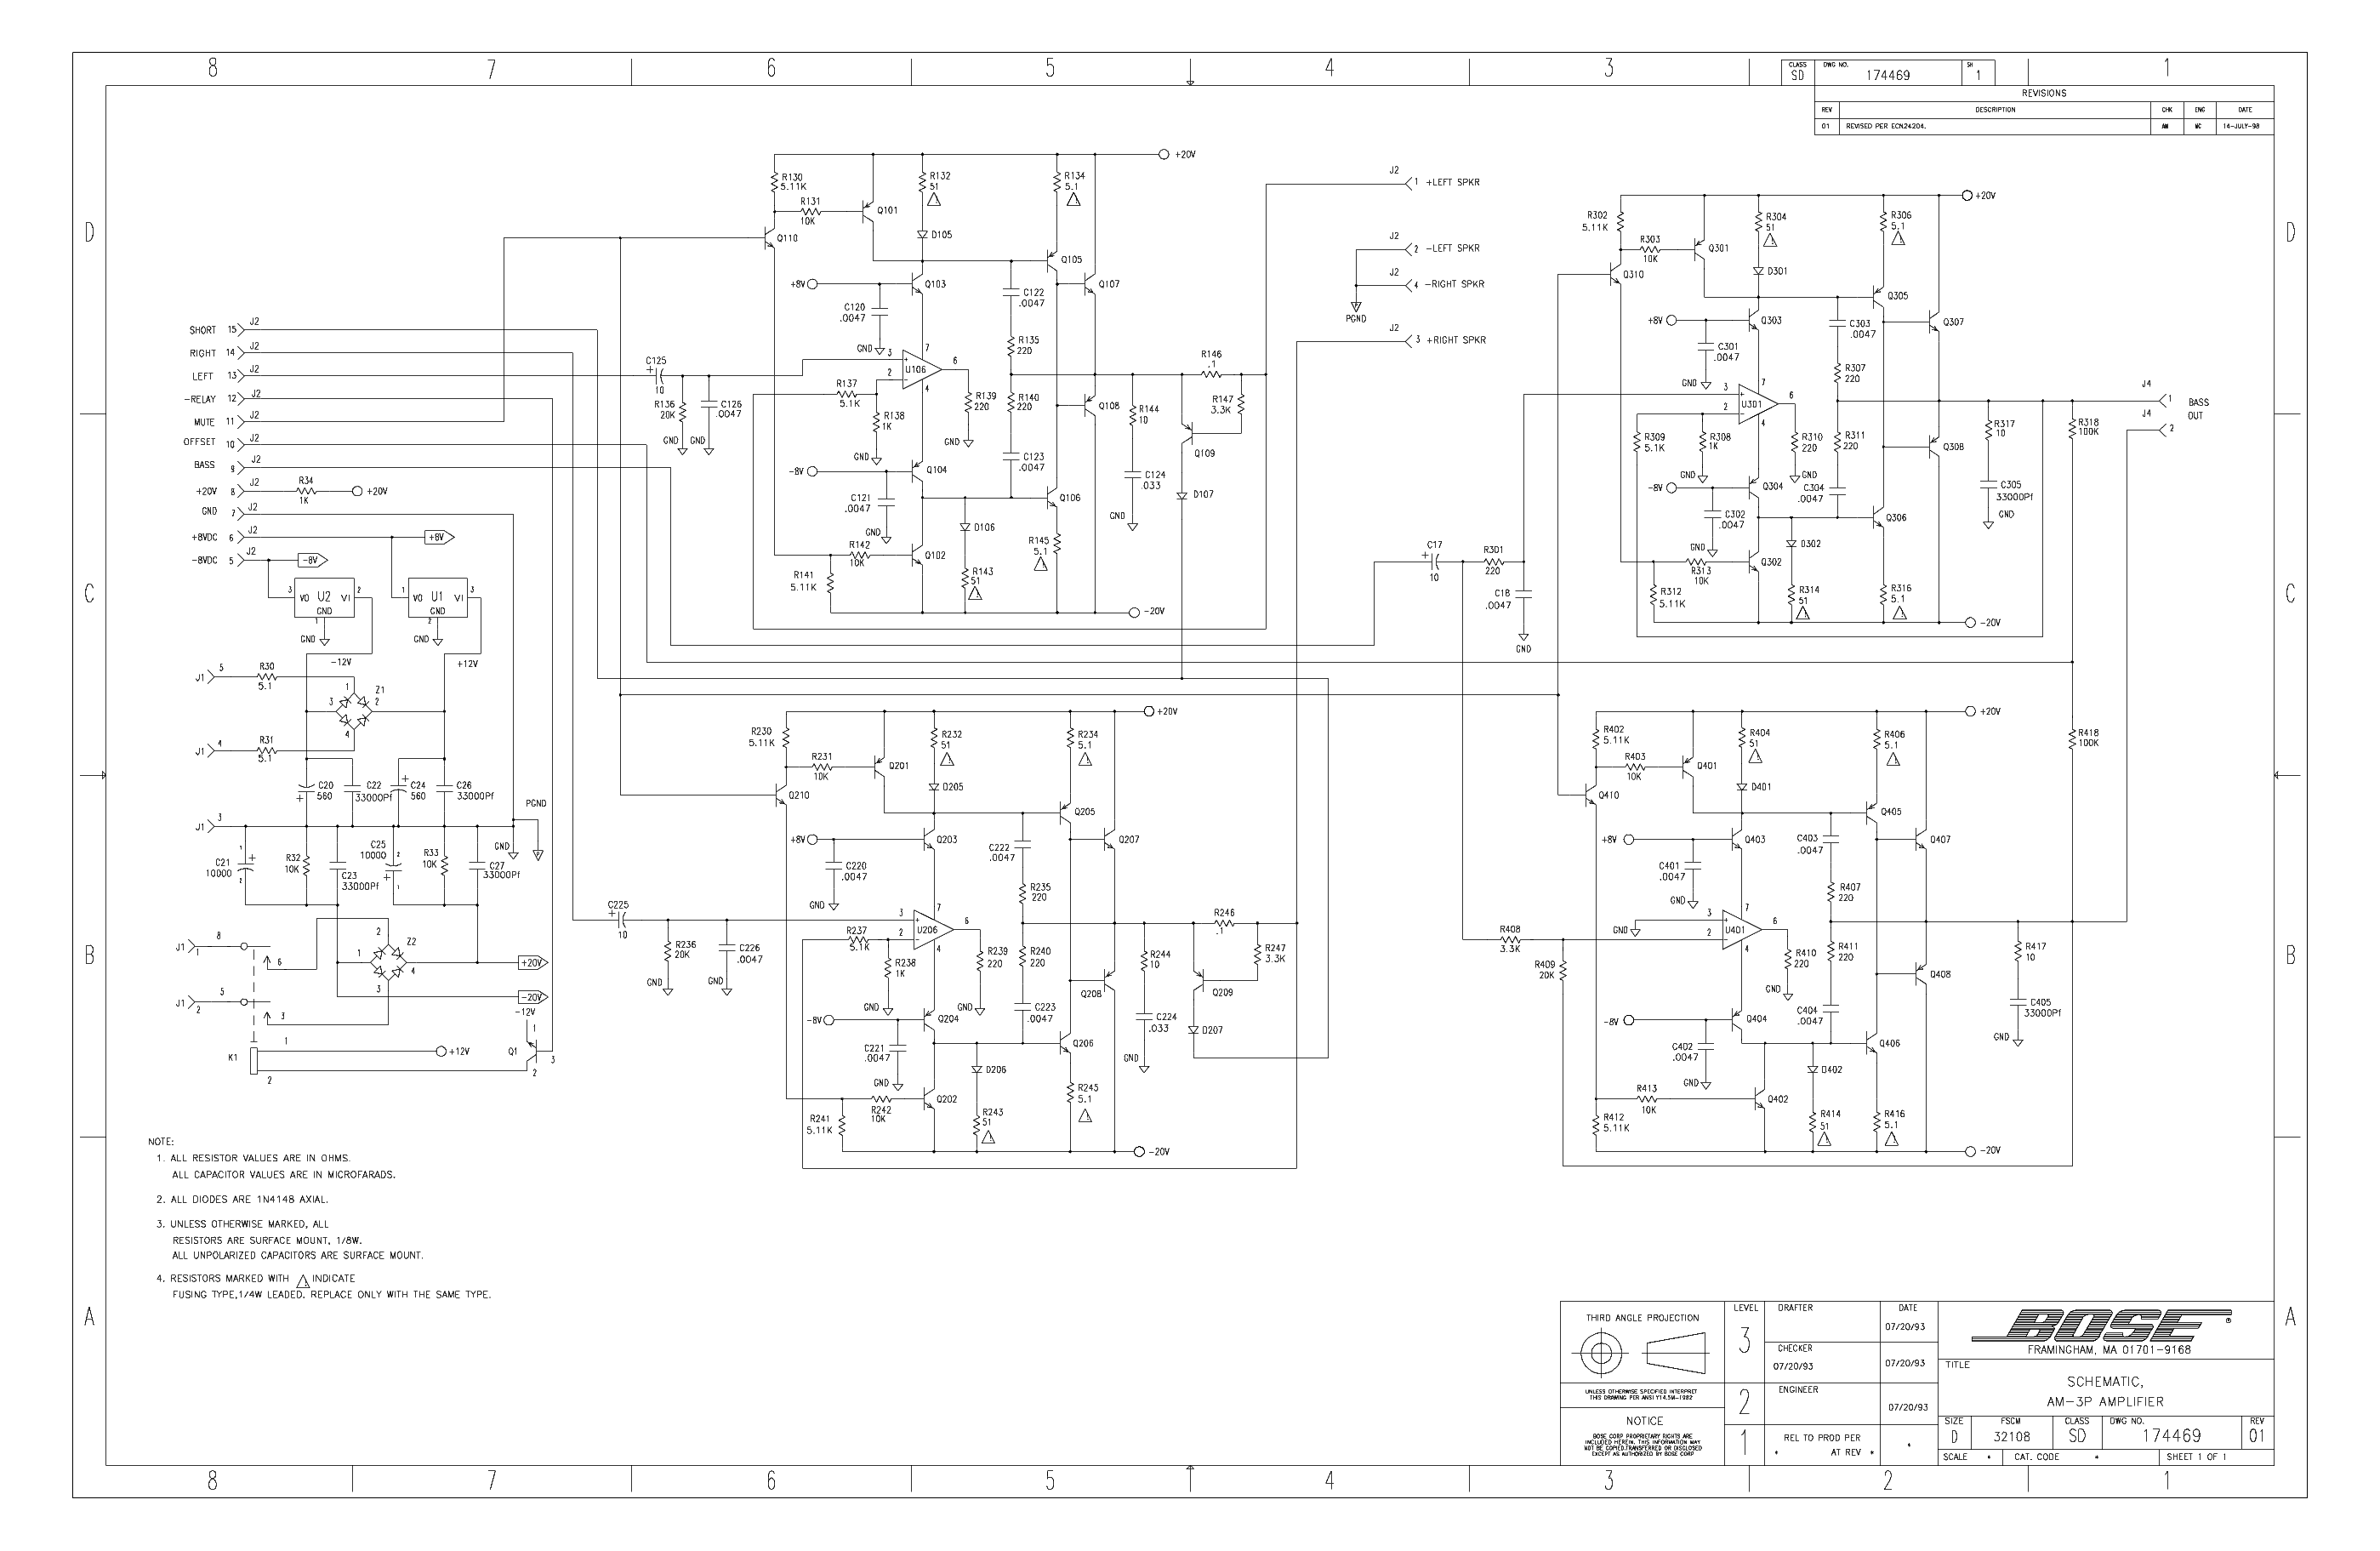 BOSE 802C Service Manual free download, schematics, eeprom